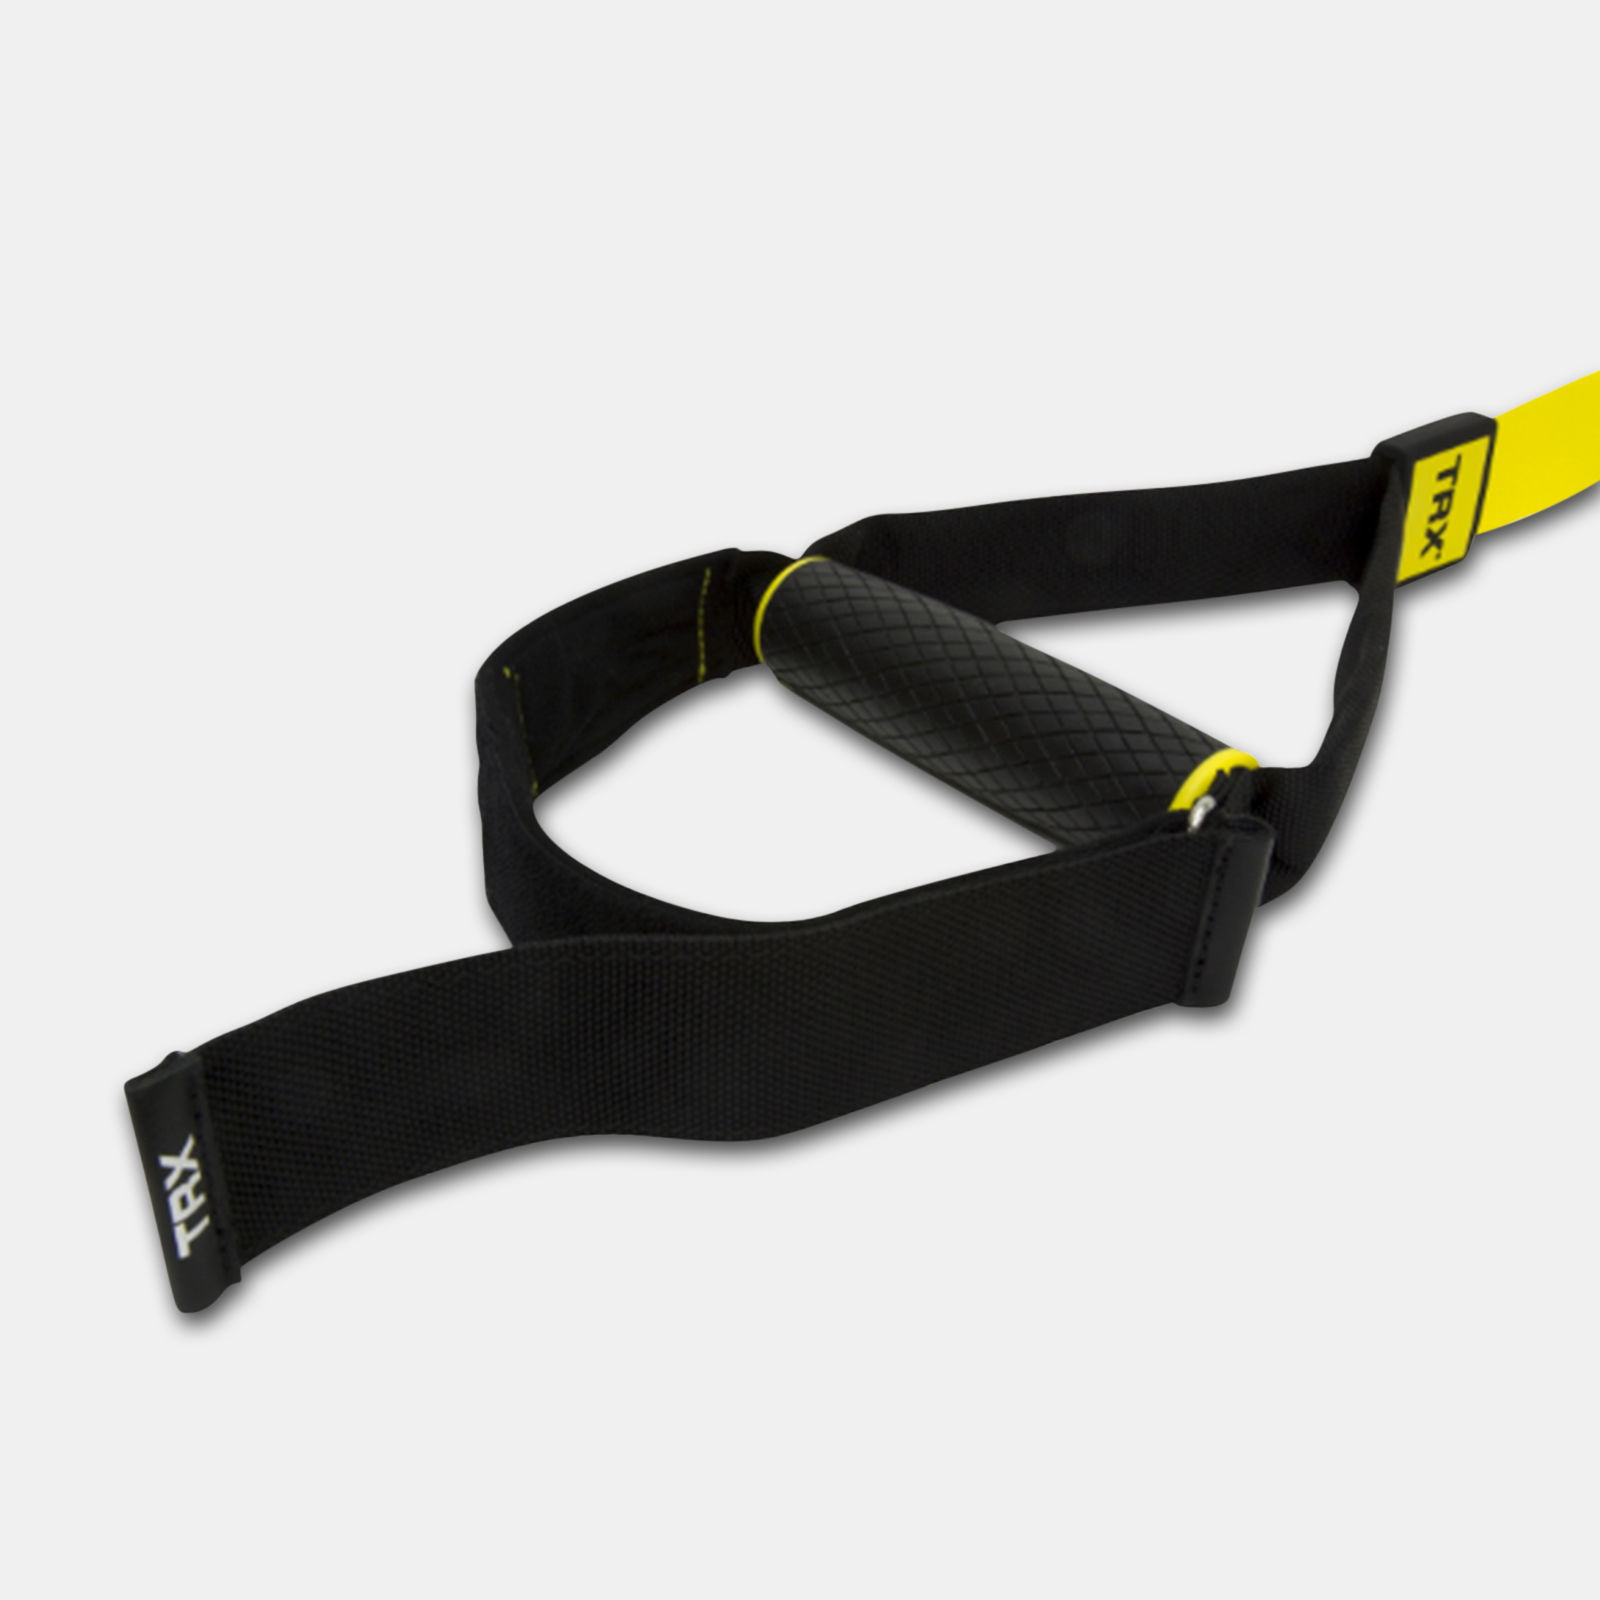 TRX Suspension Training Pro Club Pack image